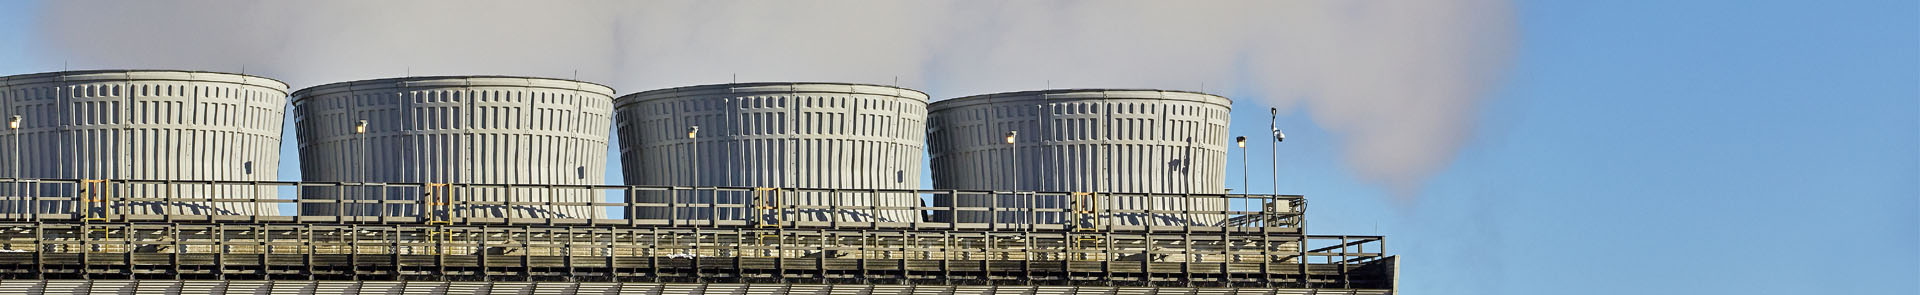 Cooling Towers with Copy Space